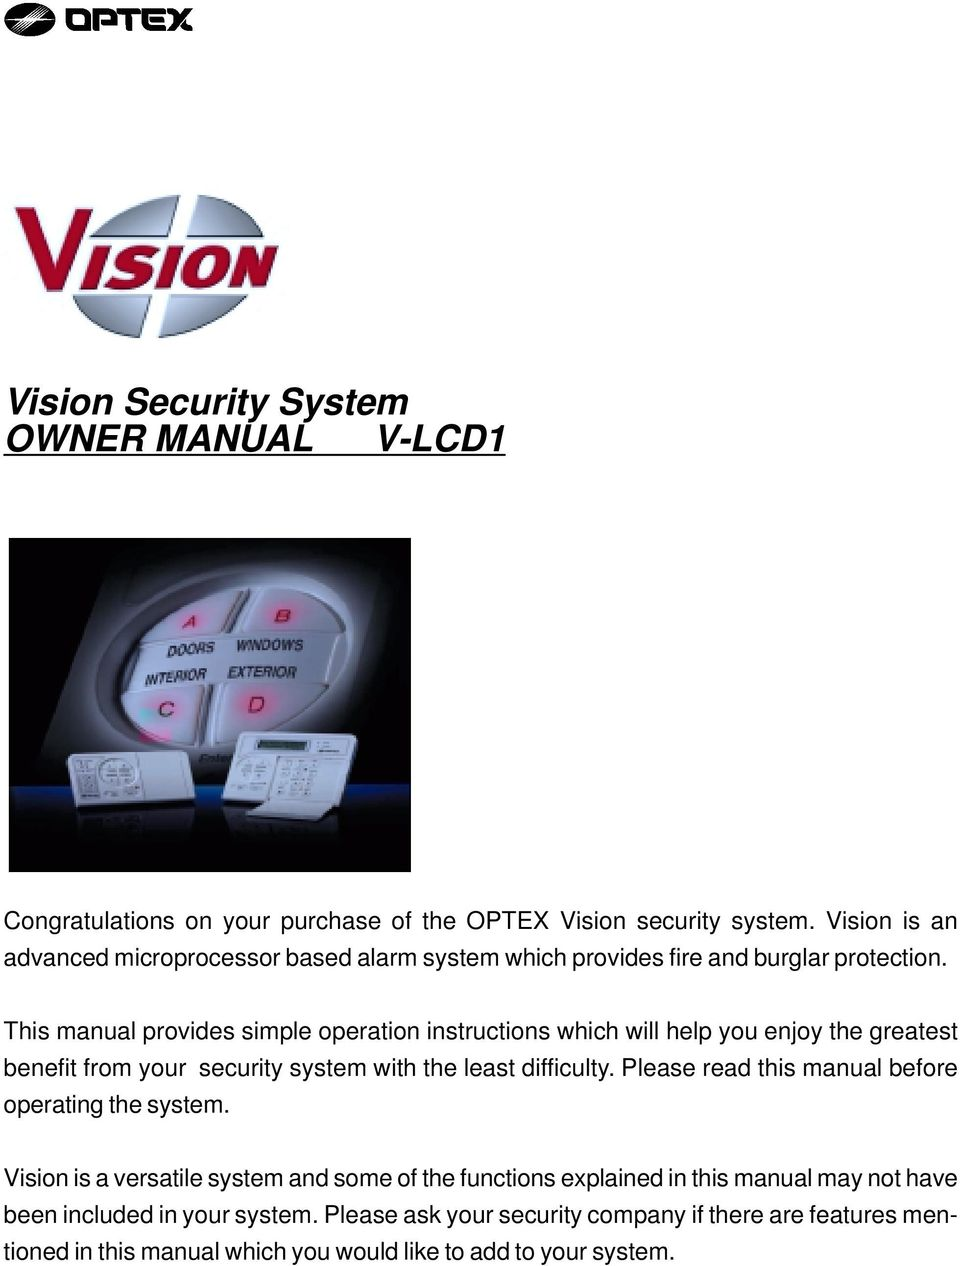 This manual provides simple operation instructions which will help you enjoy the greatest benefit from your security system with the least difficulty.